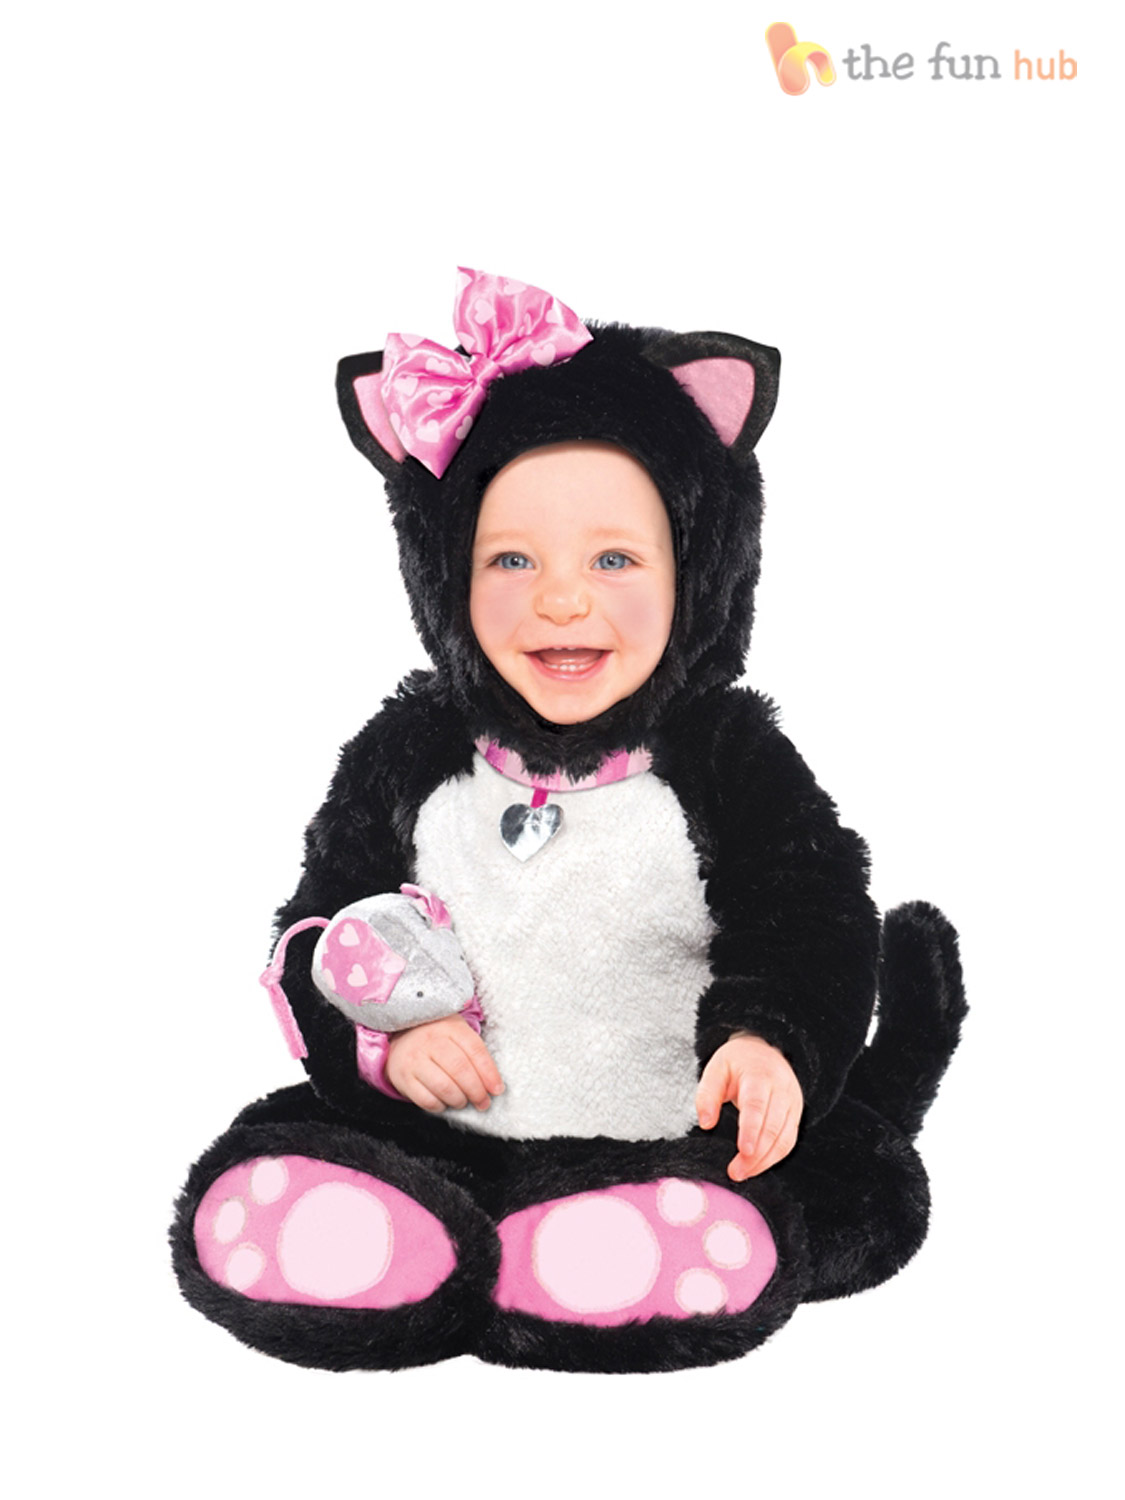 Sears has baby Halloween costumes for your little ones. Choose from a wide selection of toddler Halloween costumes, ranging from superheroes to animals. Size Months Baby & Toddler Halloween Costumes - Sears.